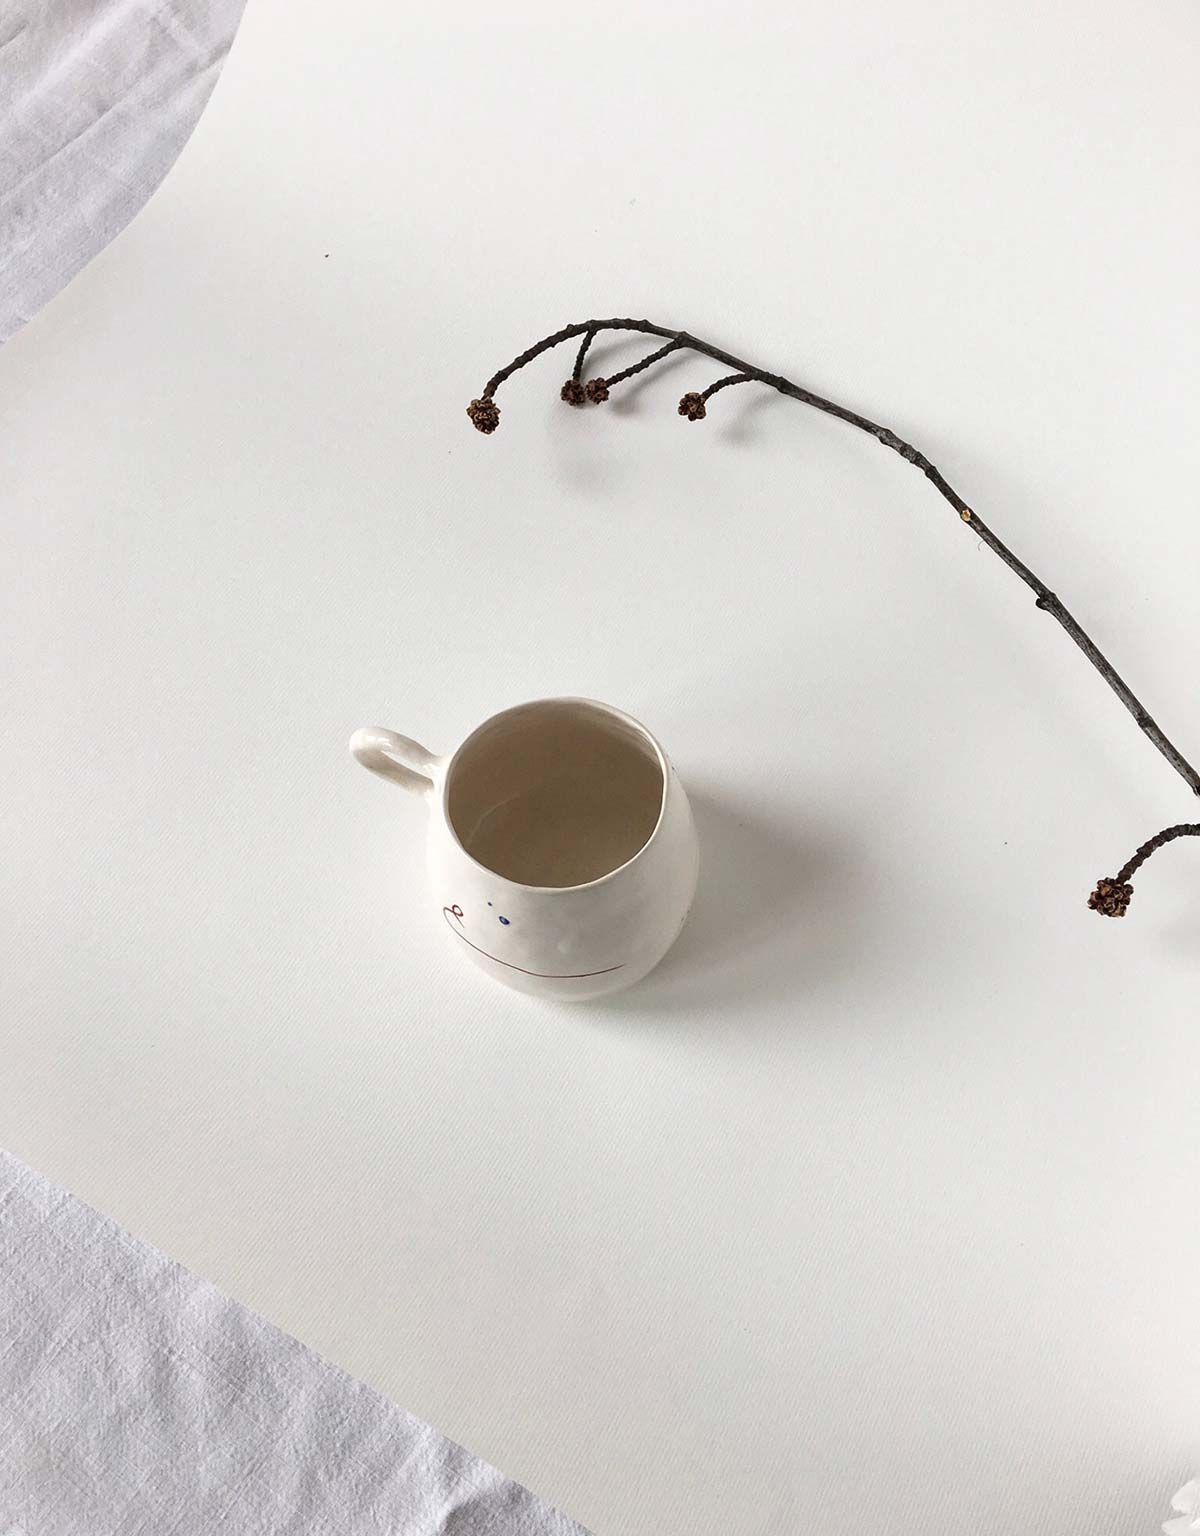 Top view - cup with abstract drawing